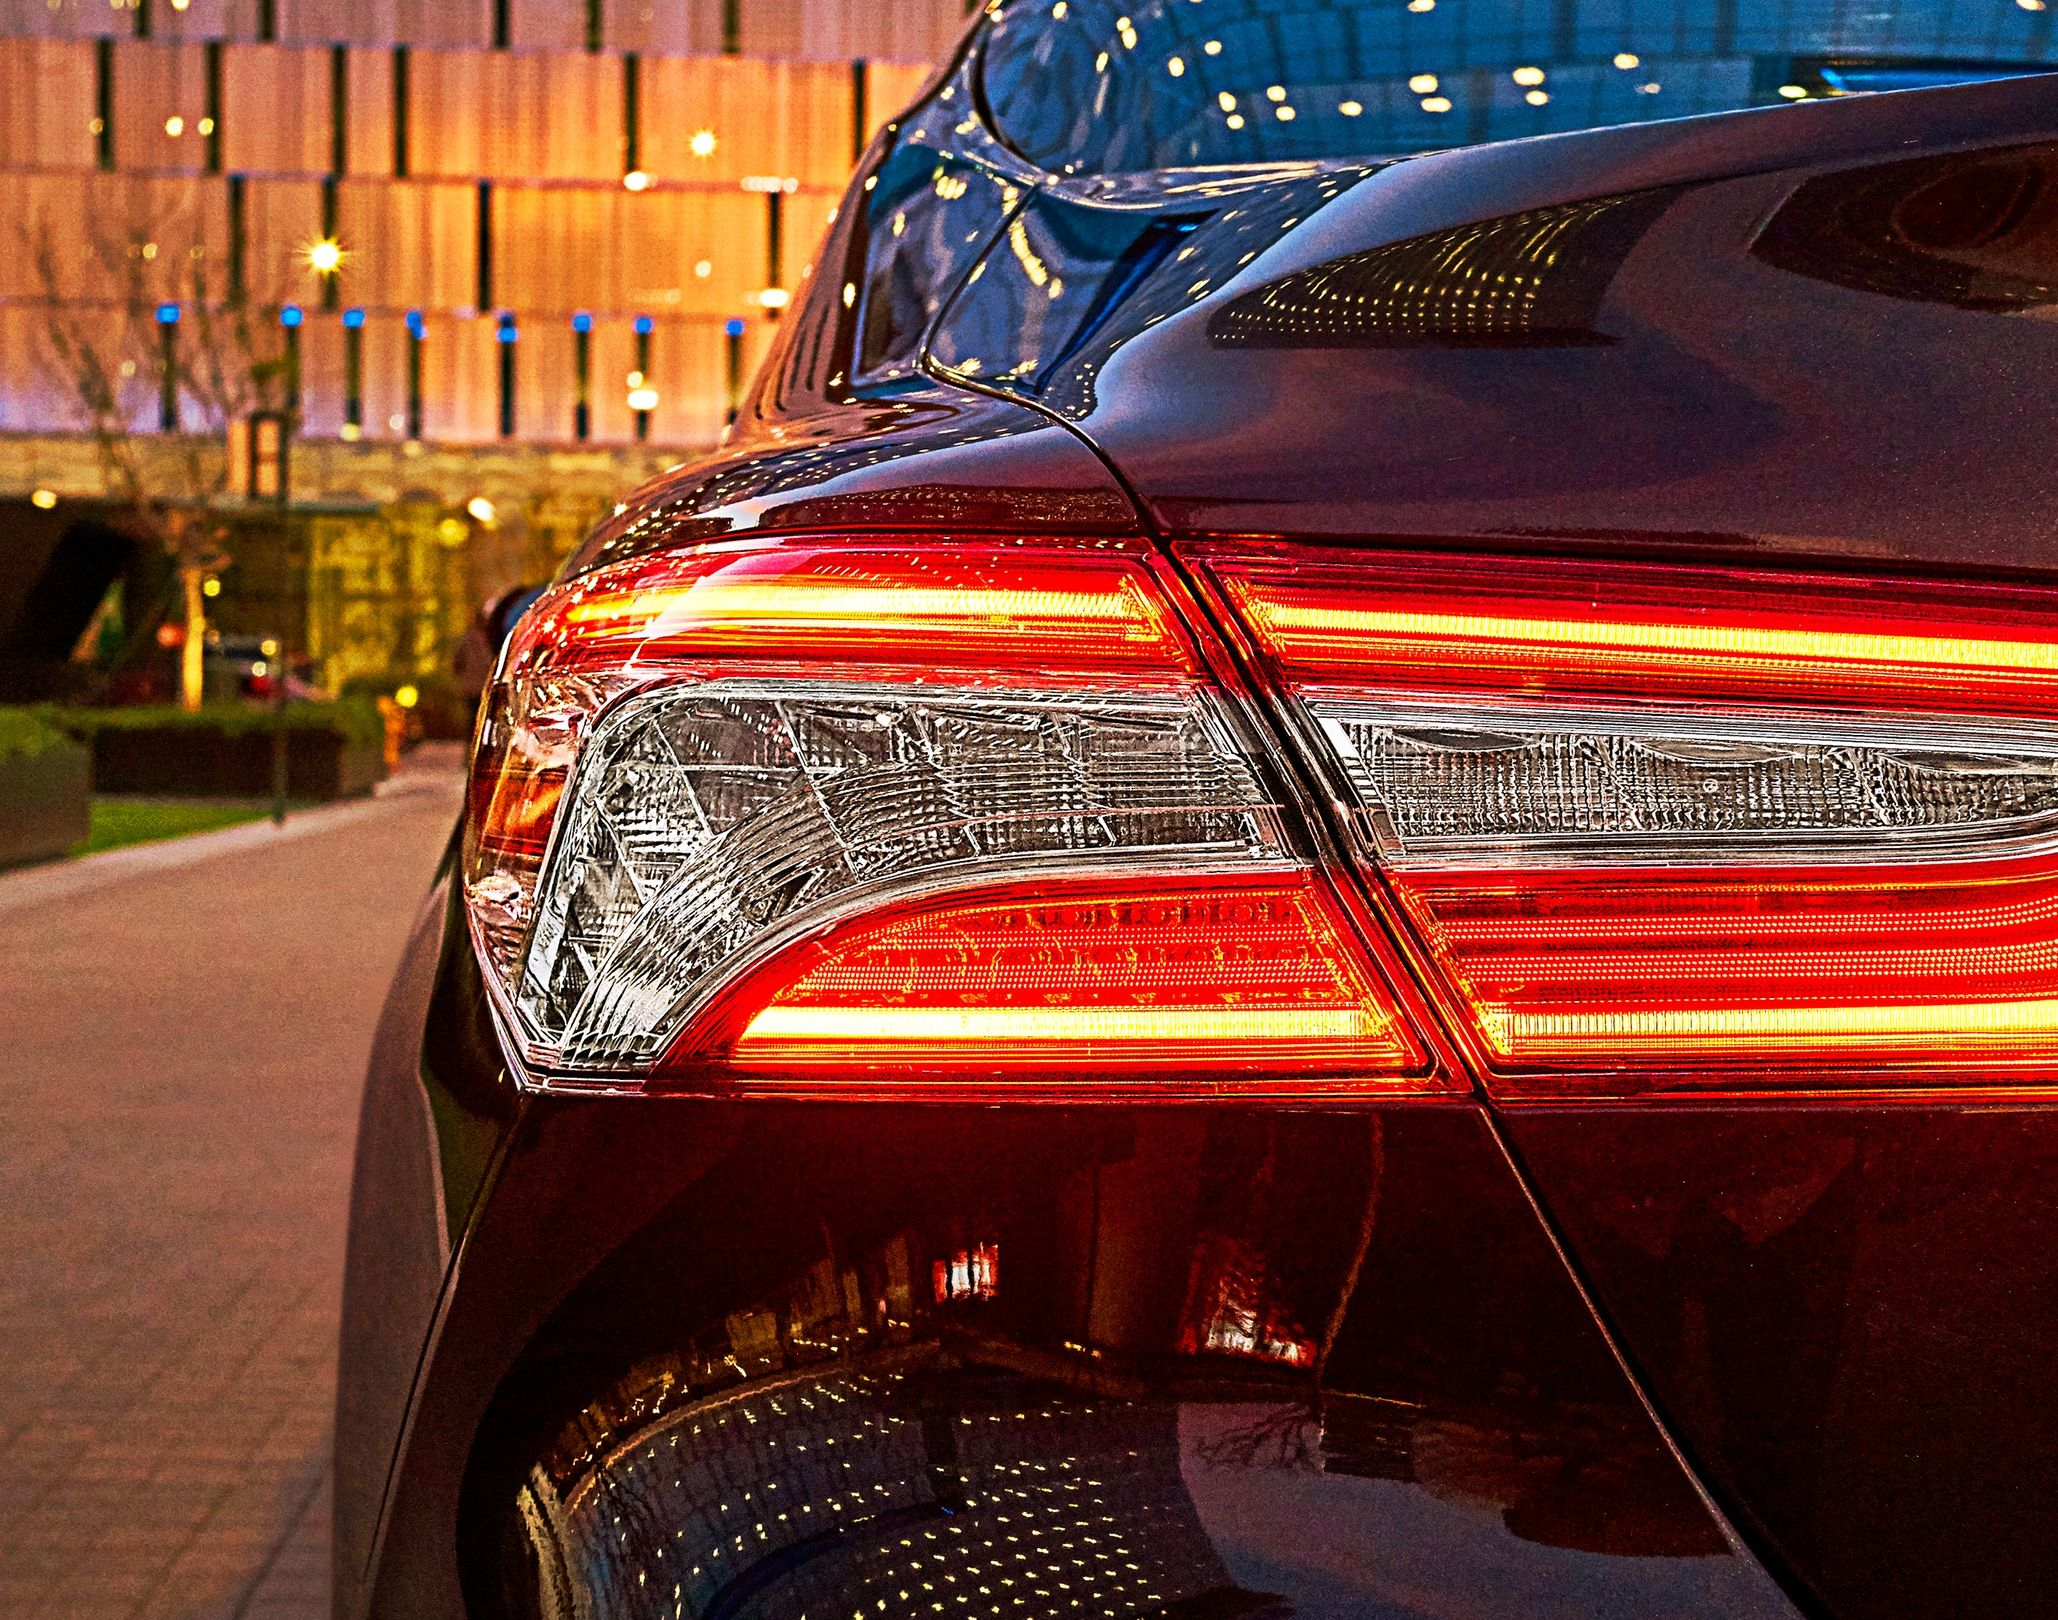 One of Camry's Taillights